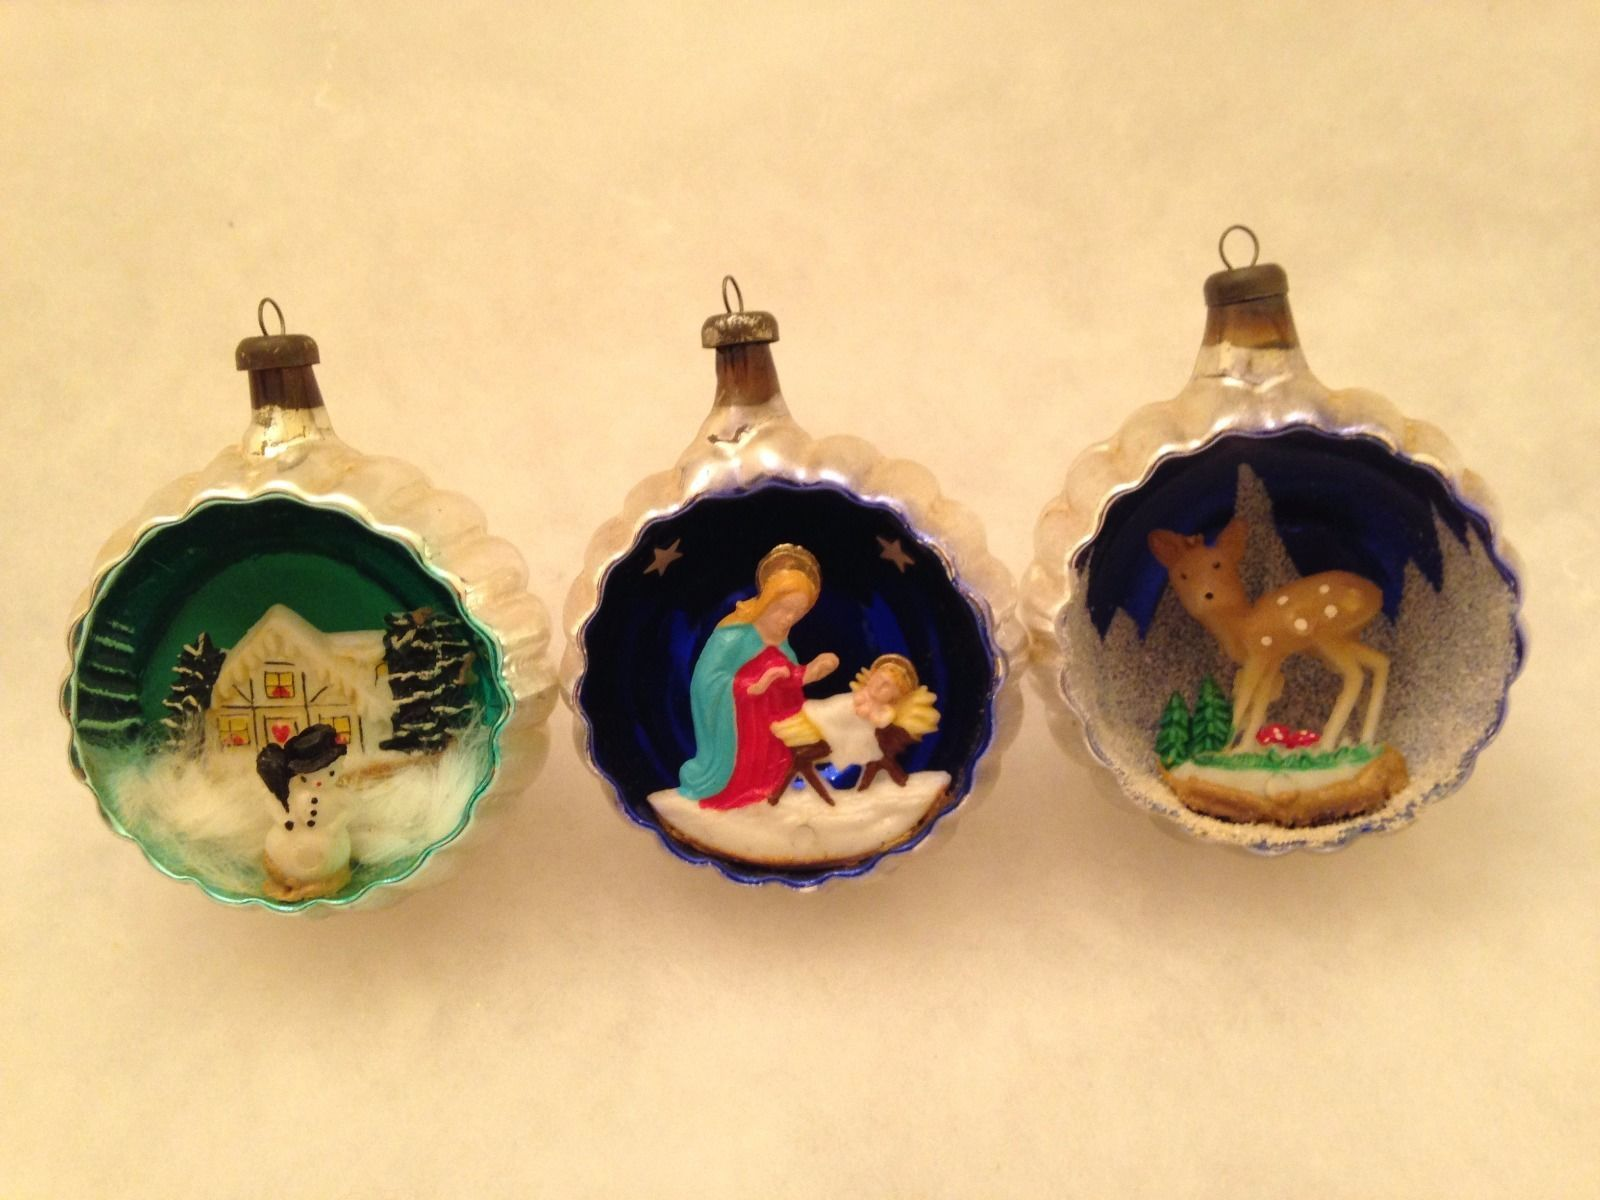 3 vintage italian mercury glass diorama indent scene christmas tree ornaments ebay - Ebay Vintage Christmas Decorations